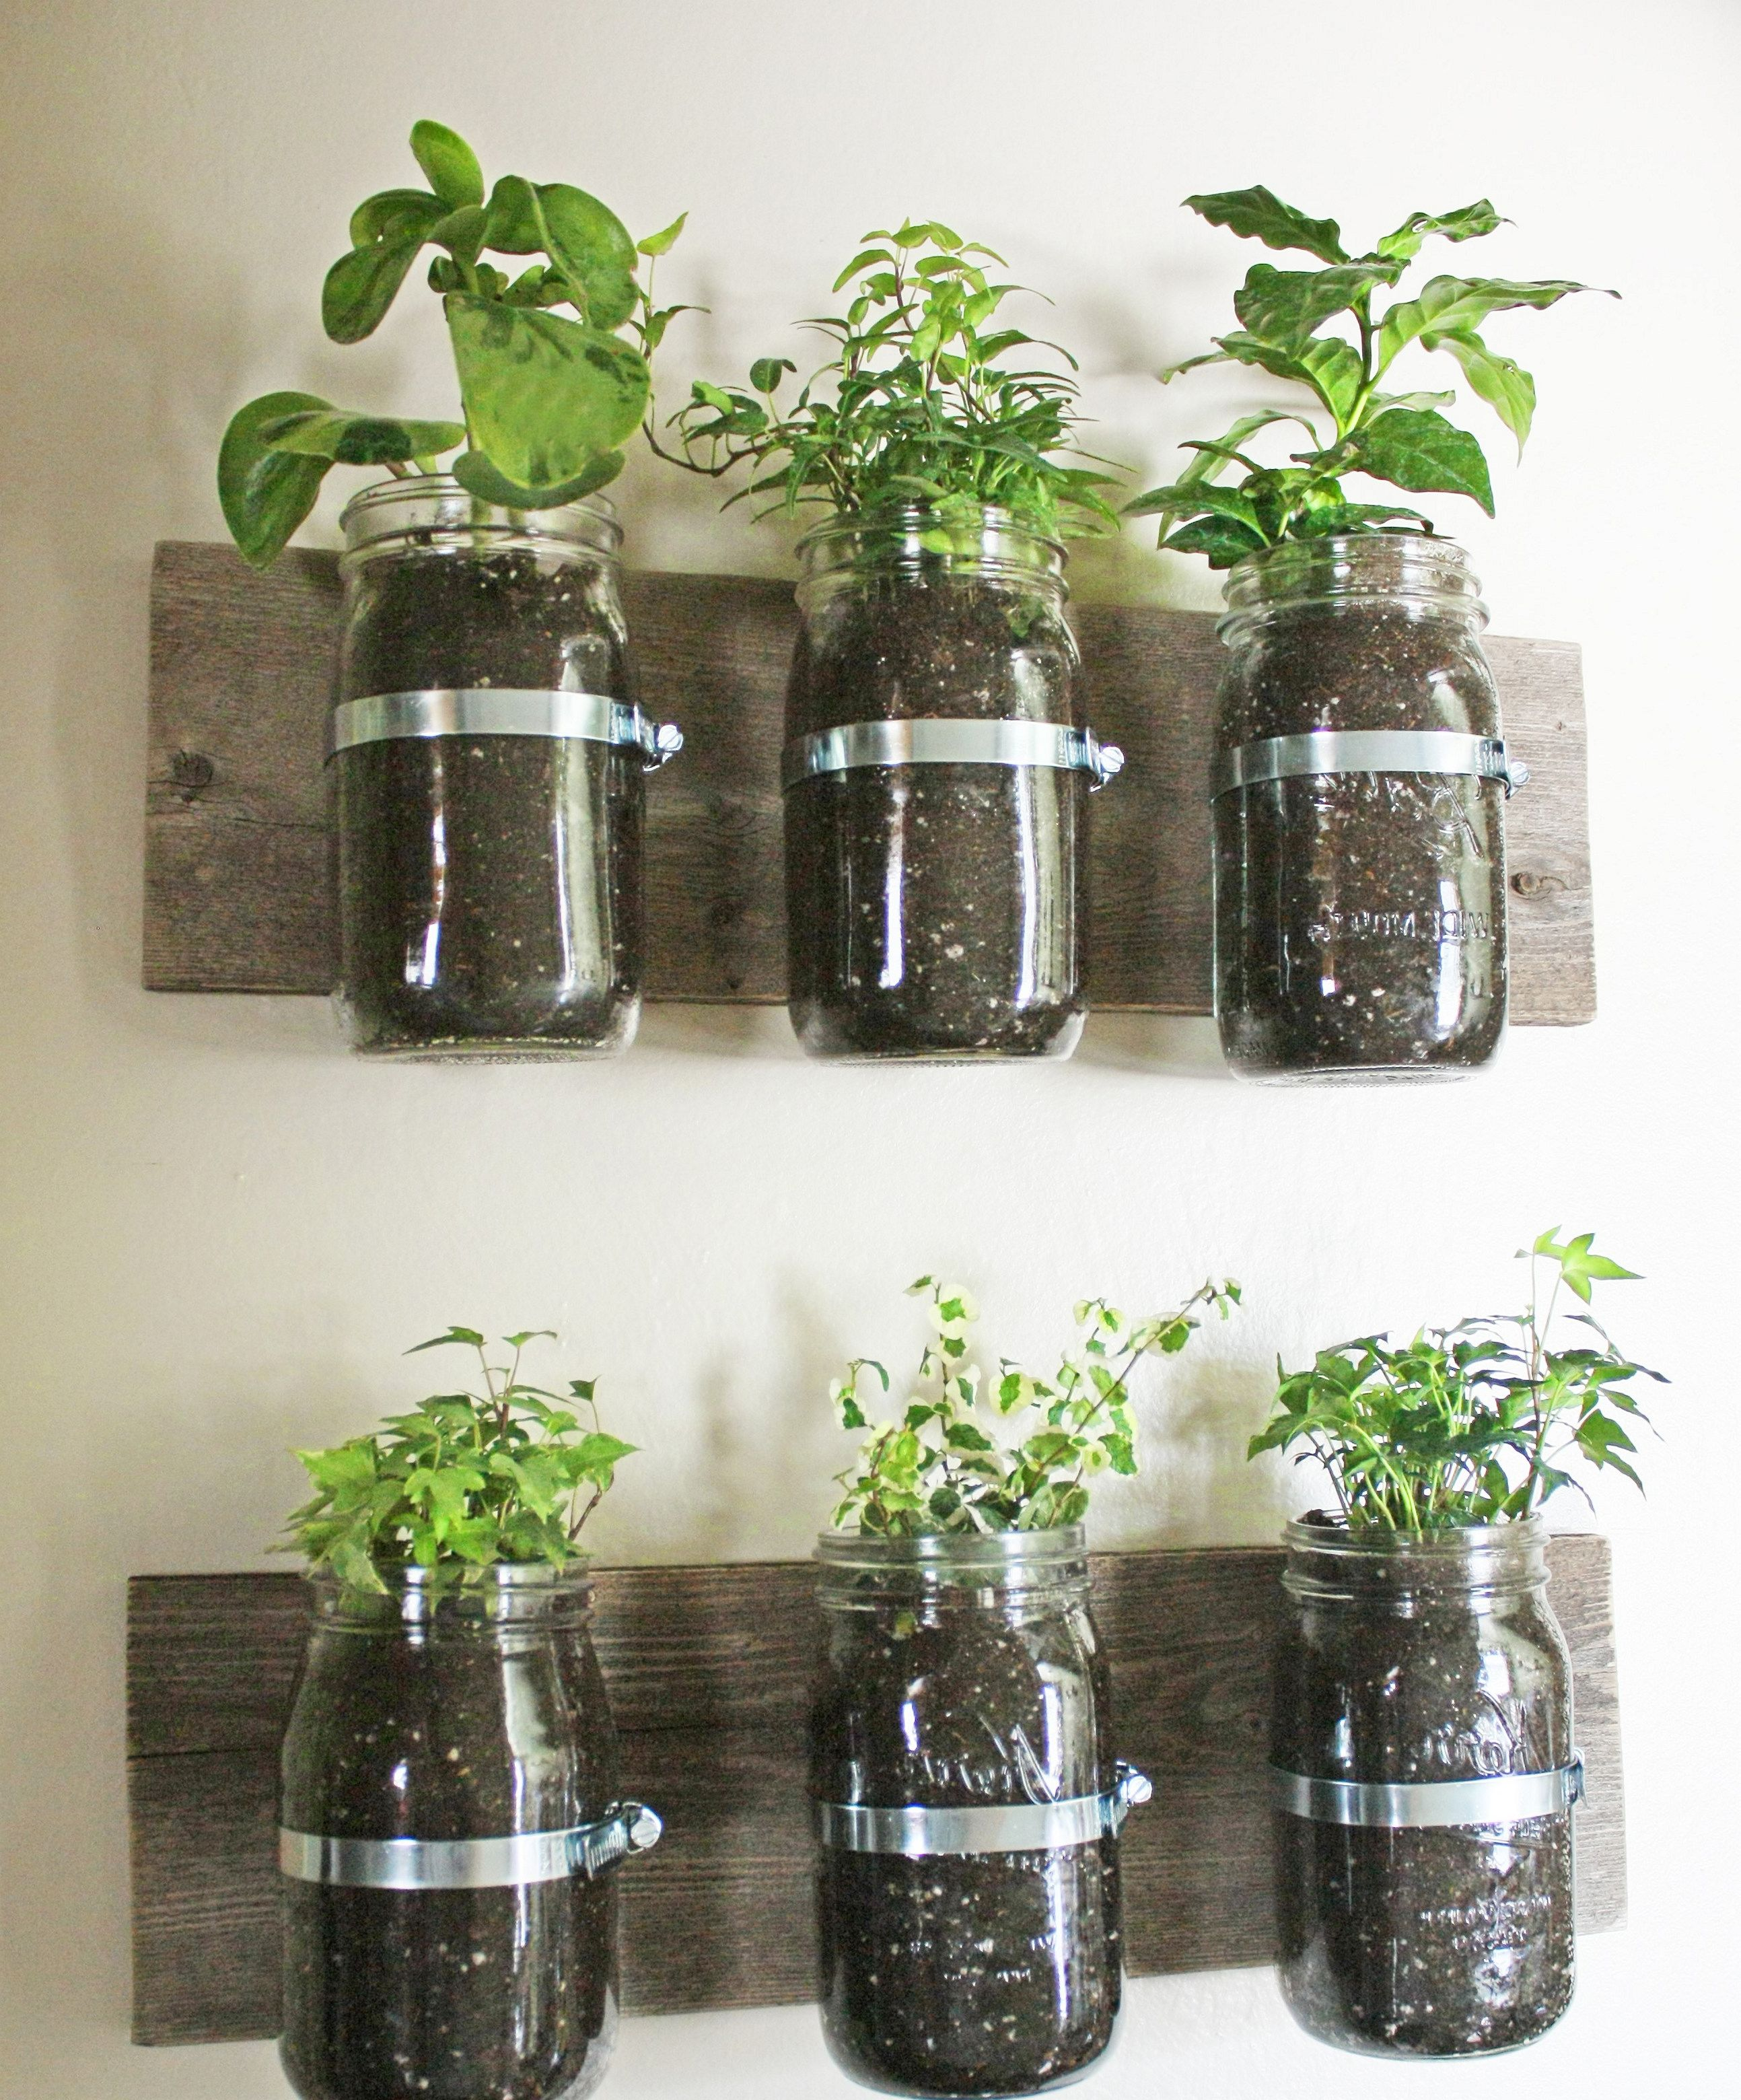 House Wall Planters Indoor  Home Design And Decor Inspiration